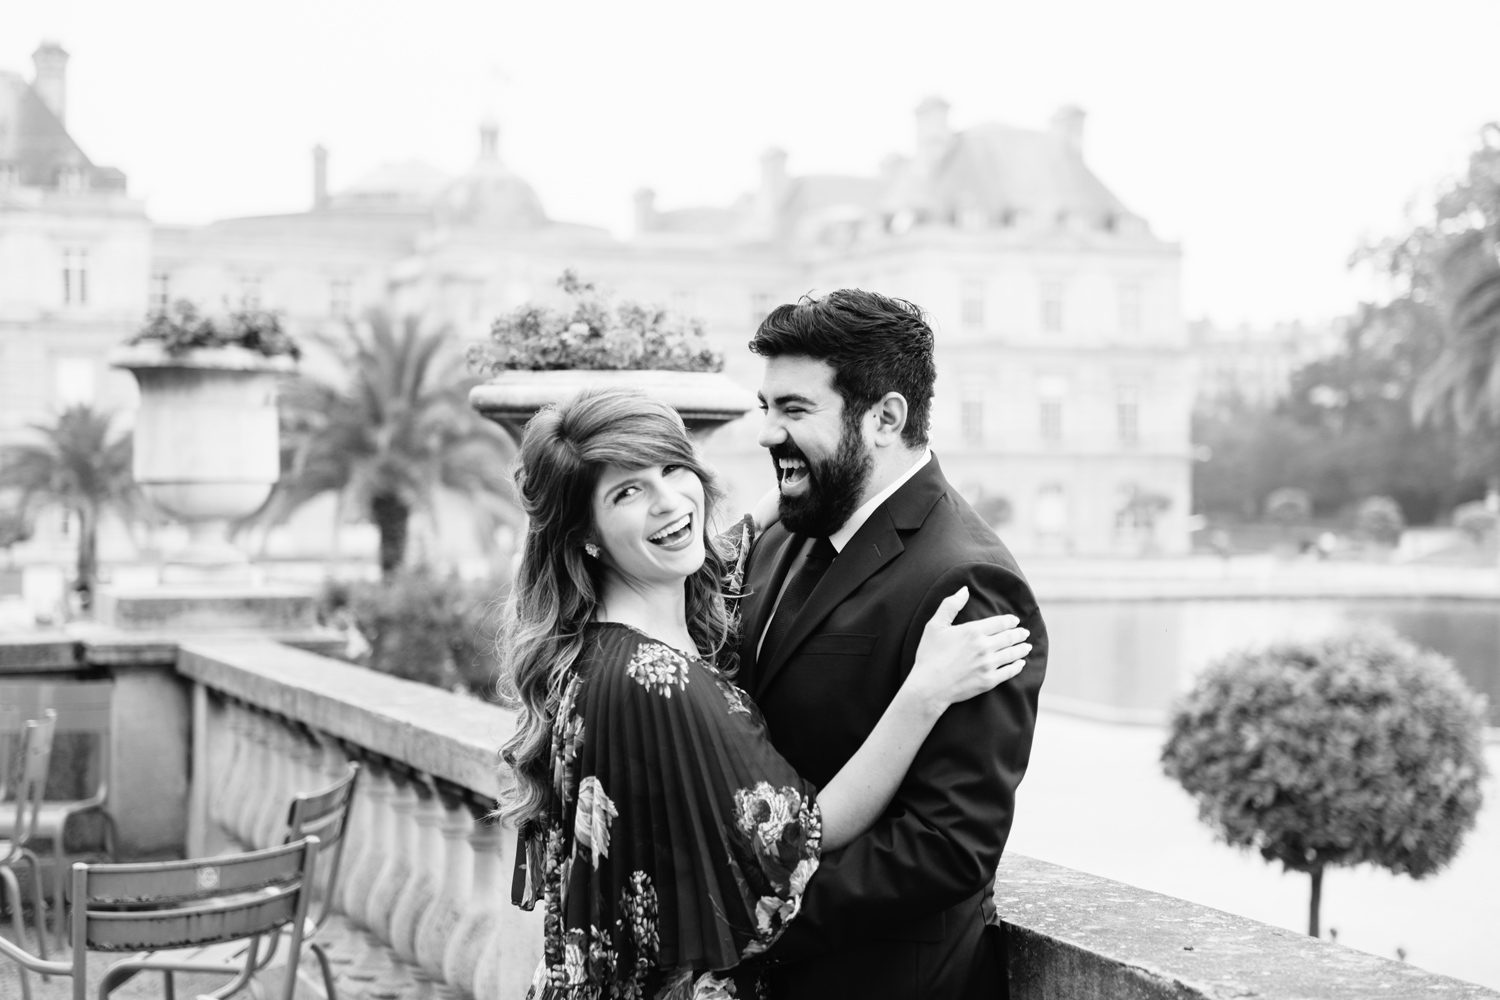 008-katie-mitchell-photography-paris-wedding-elopement-engagement-honeymoon-anniversary-photographer-france.jpg